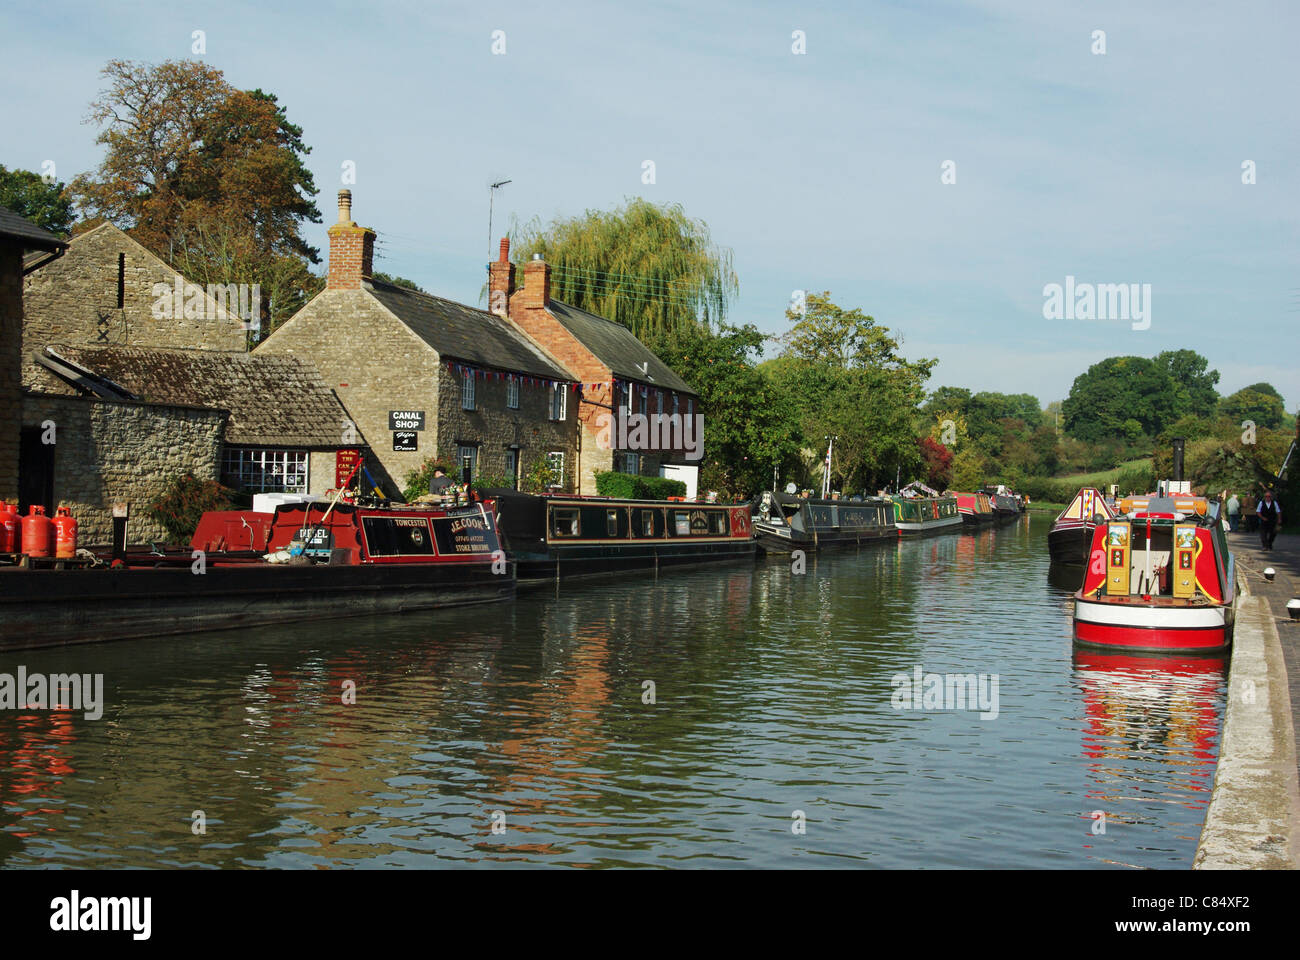 Narrowboats on the Grand Union Canal at Stoke Bruerne - Stock Image